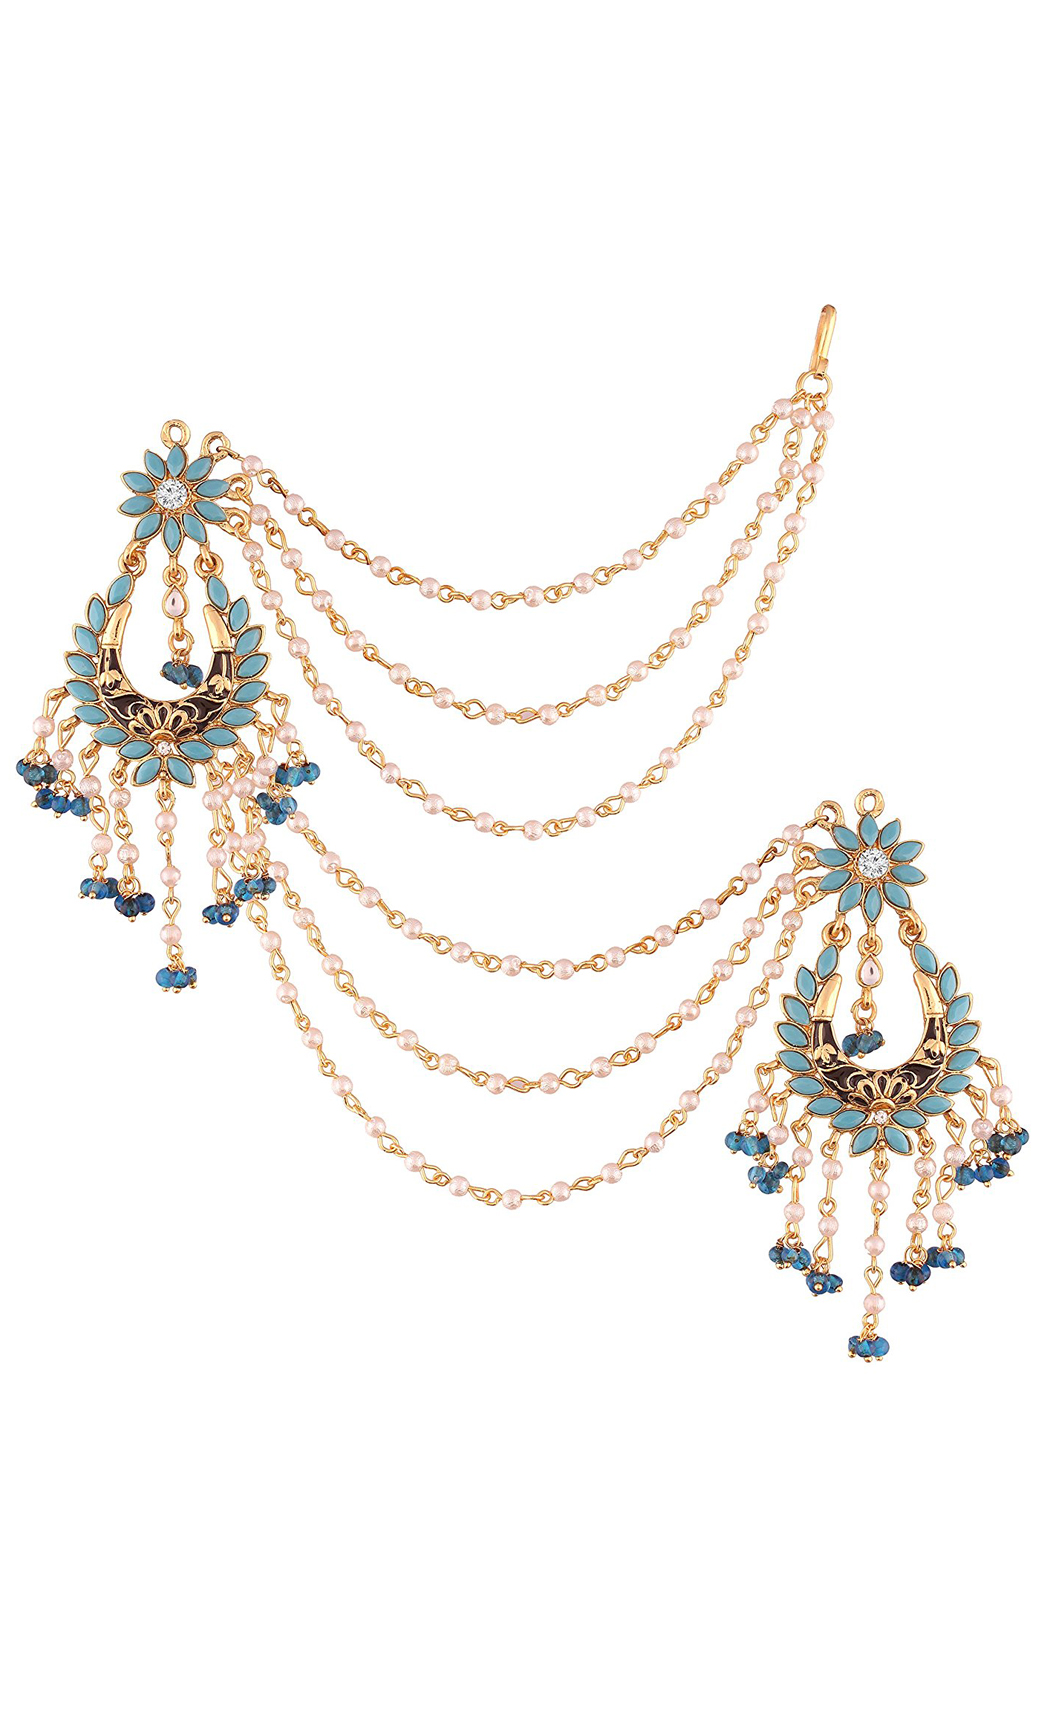 Turquoise and Pearl Chandbali Earrings with Pearl Hair Chains - Shop Online